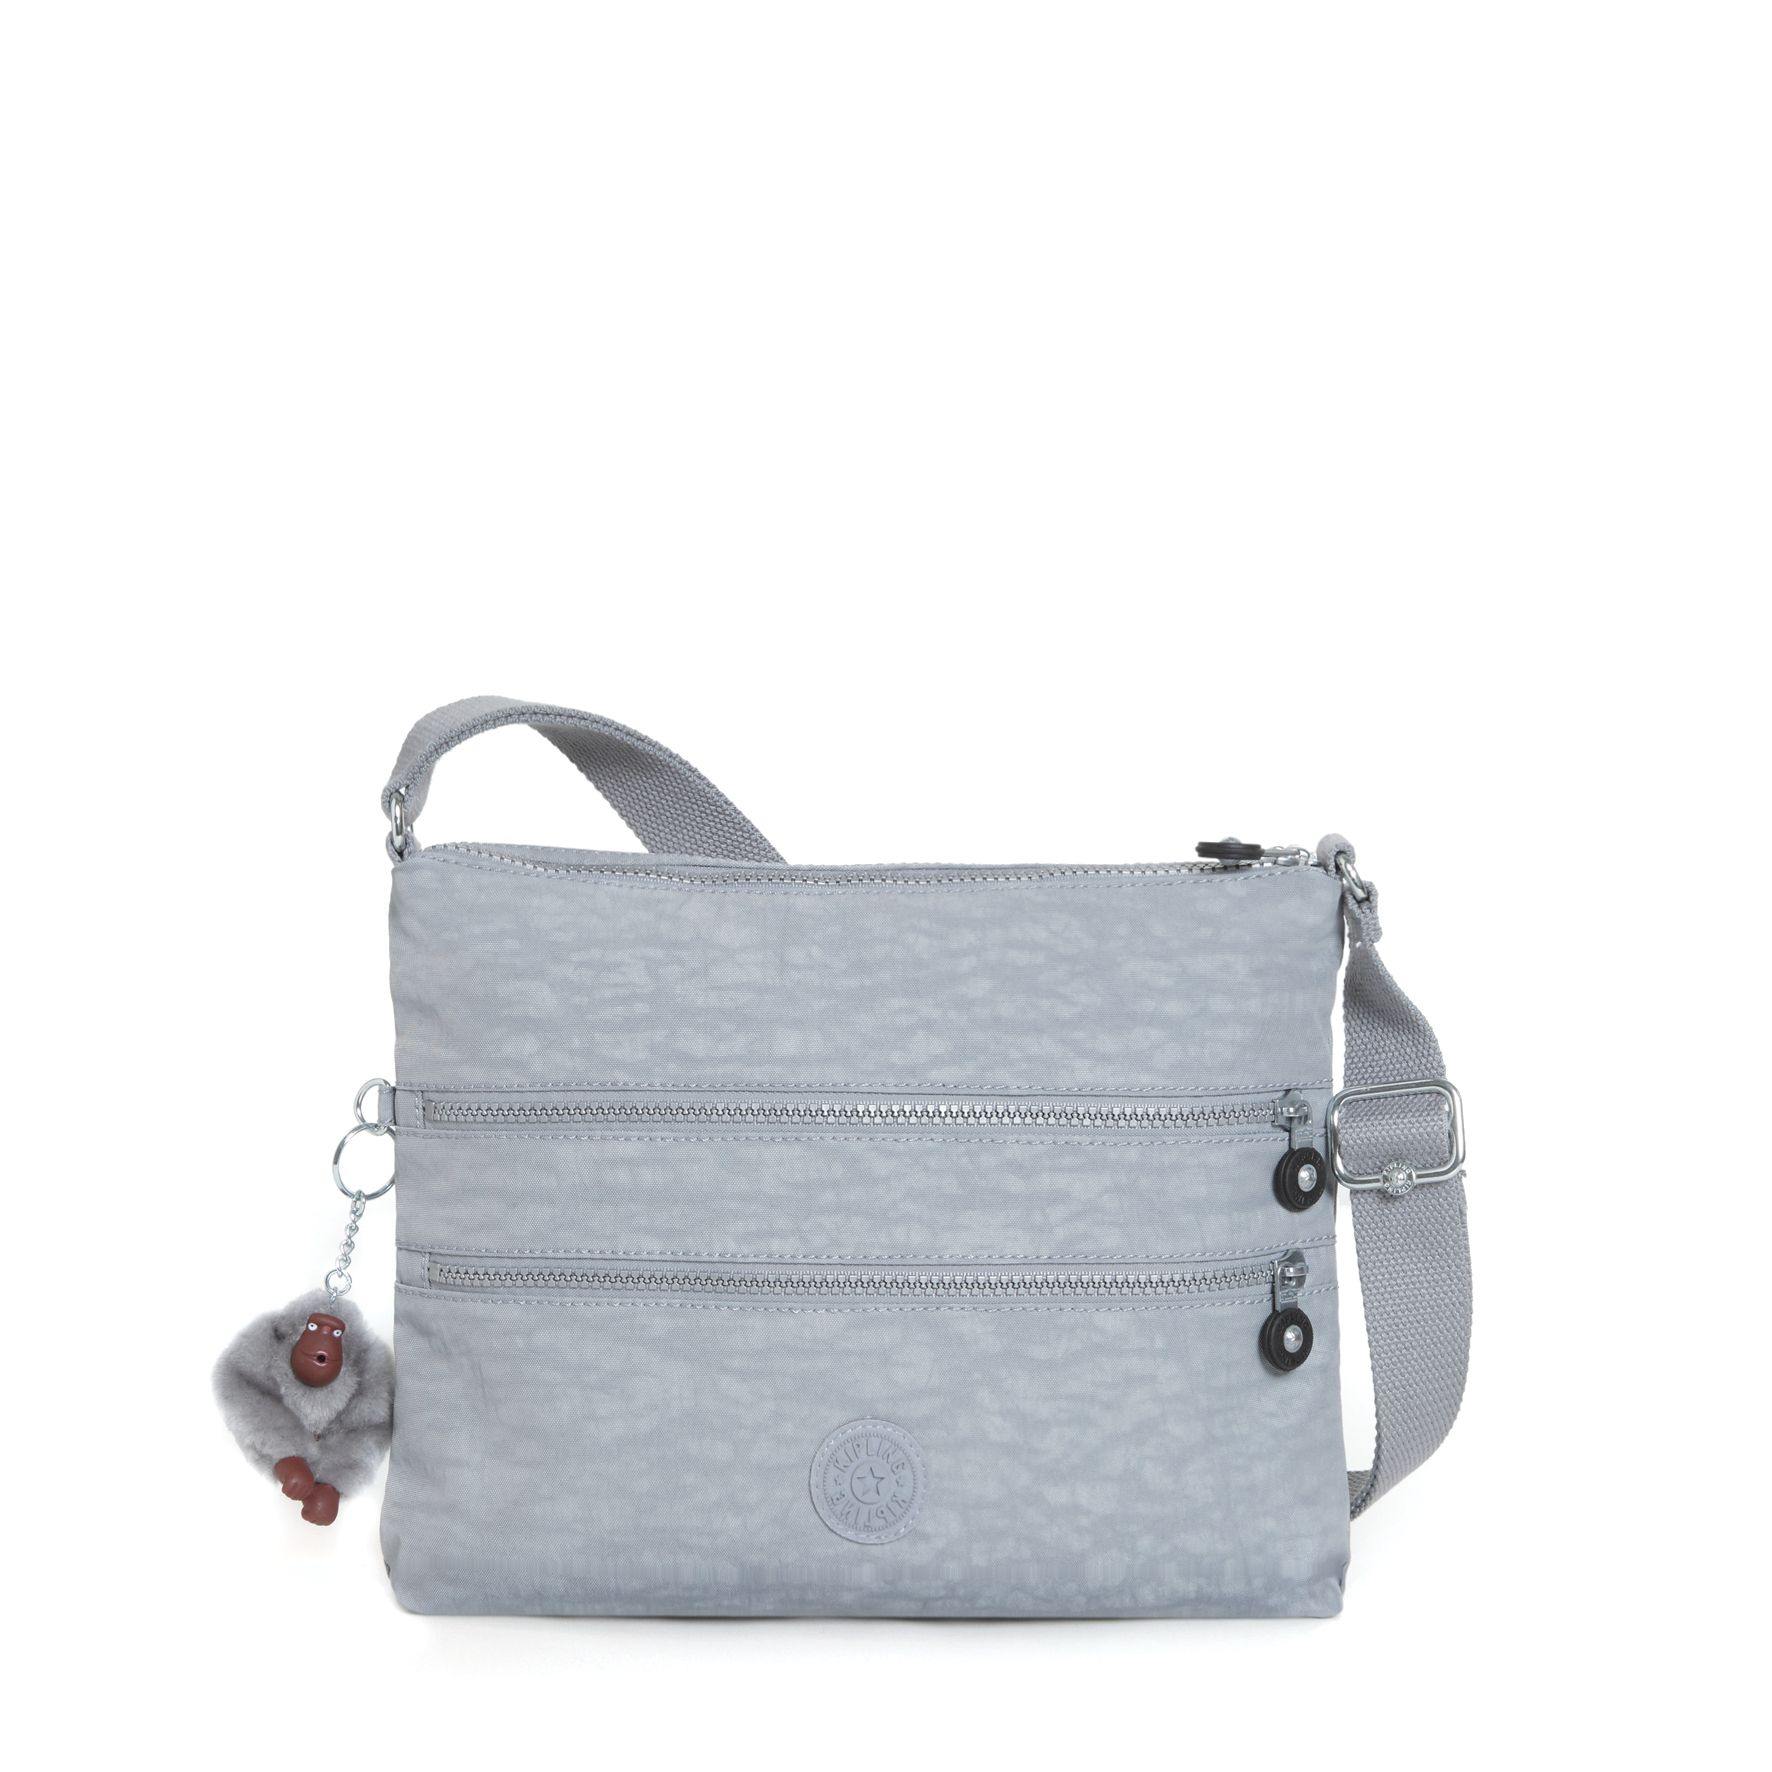 Kipling Alvar Across Body Shoulder Bag, Grey